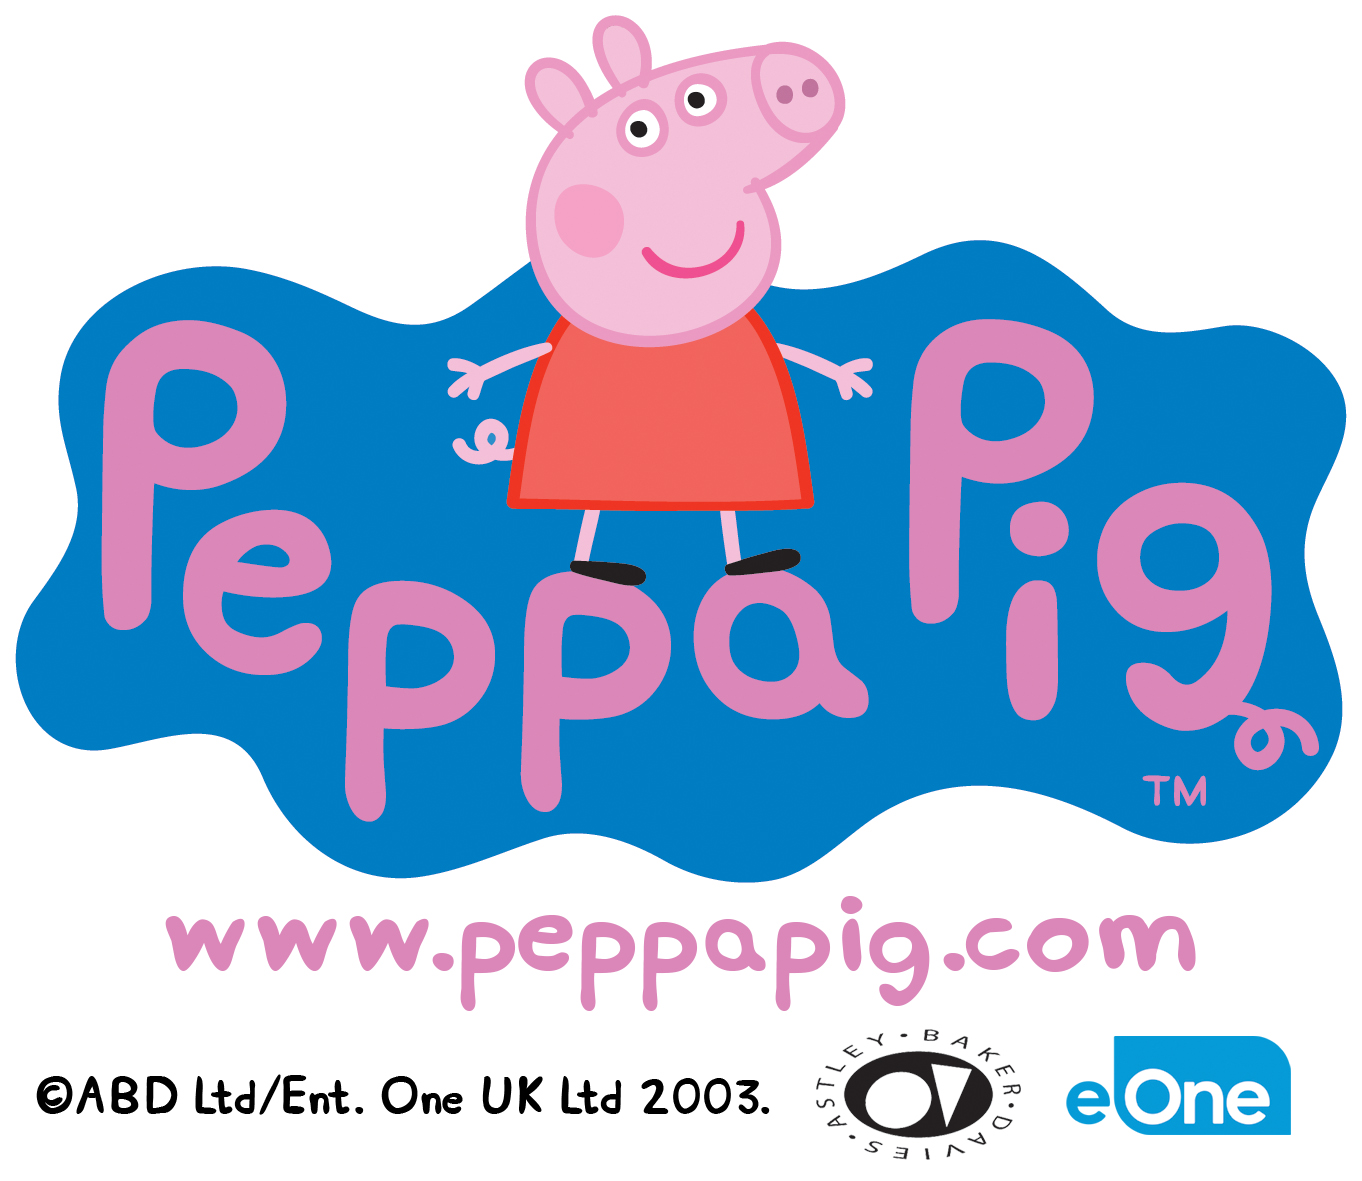 Meet Peppa Pig at Dean Forest Railway